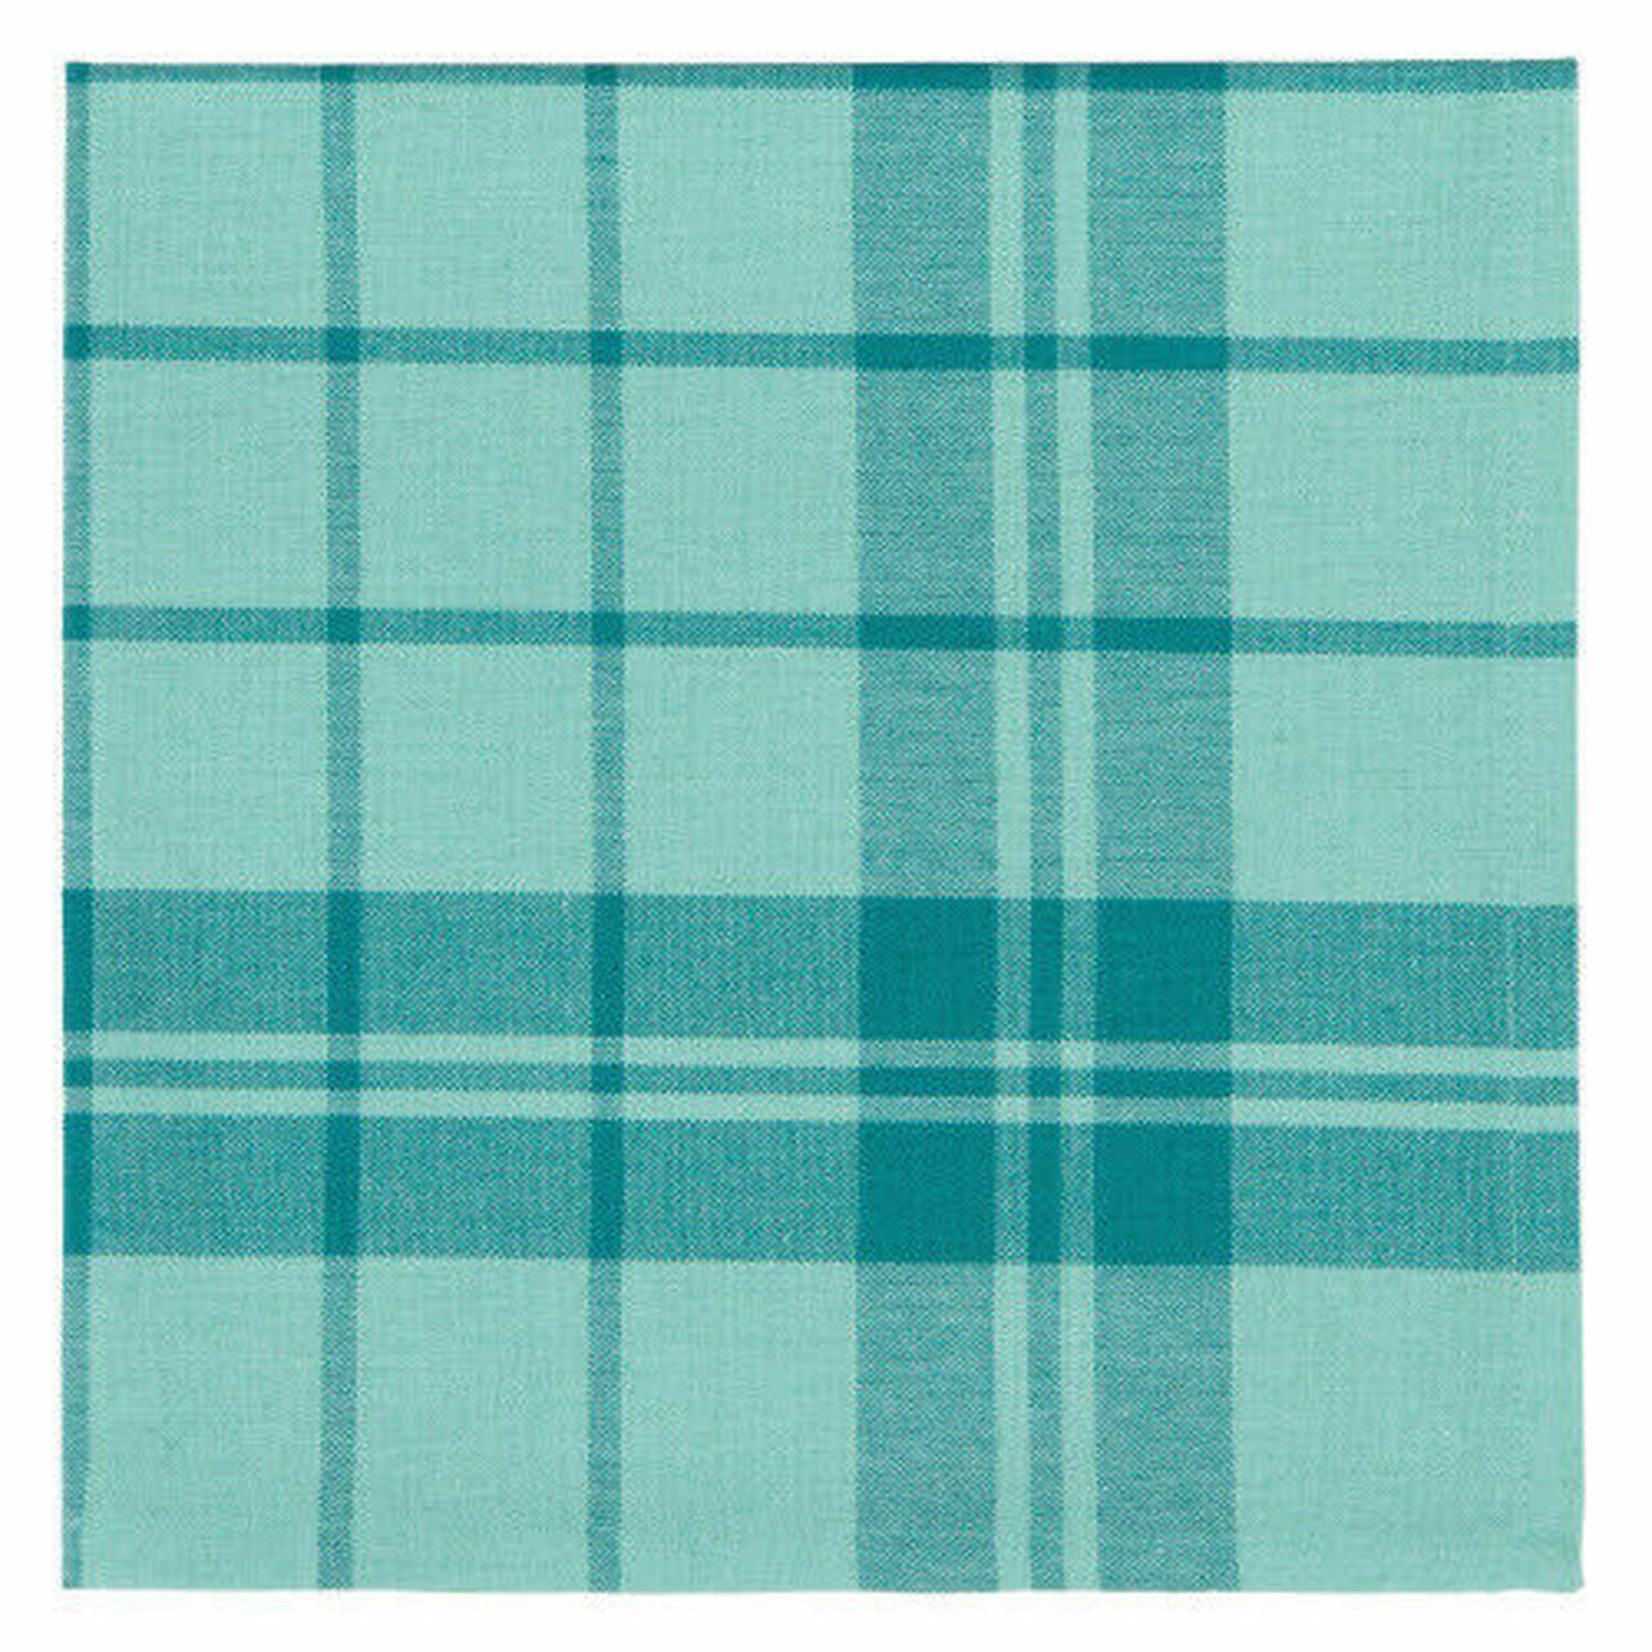 Second Spin Green - Napkin S/4